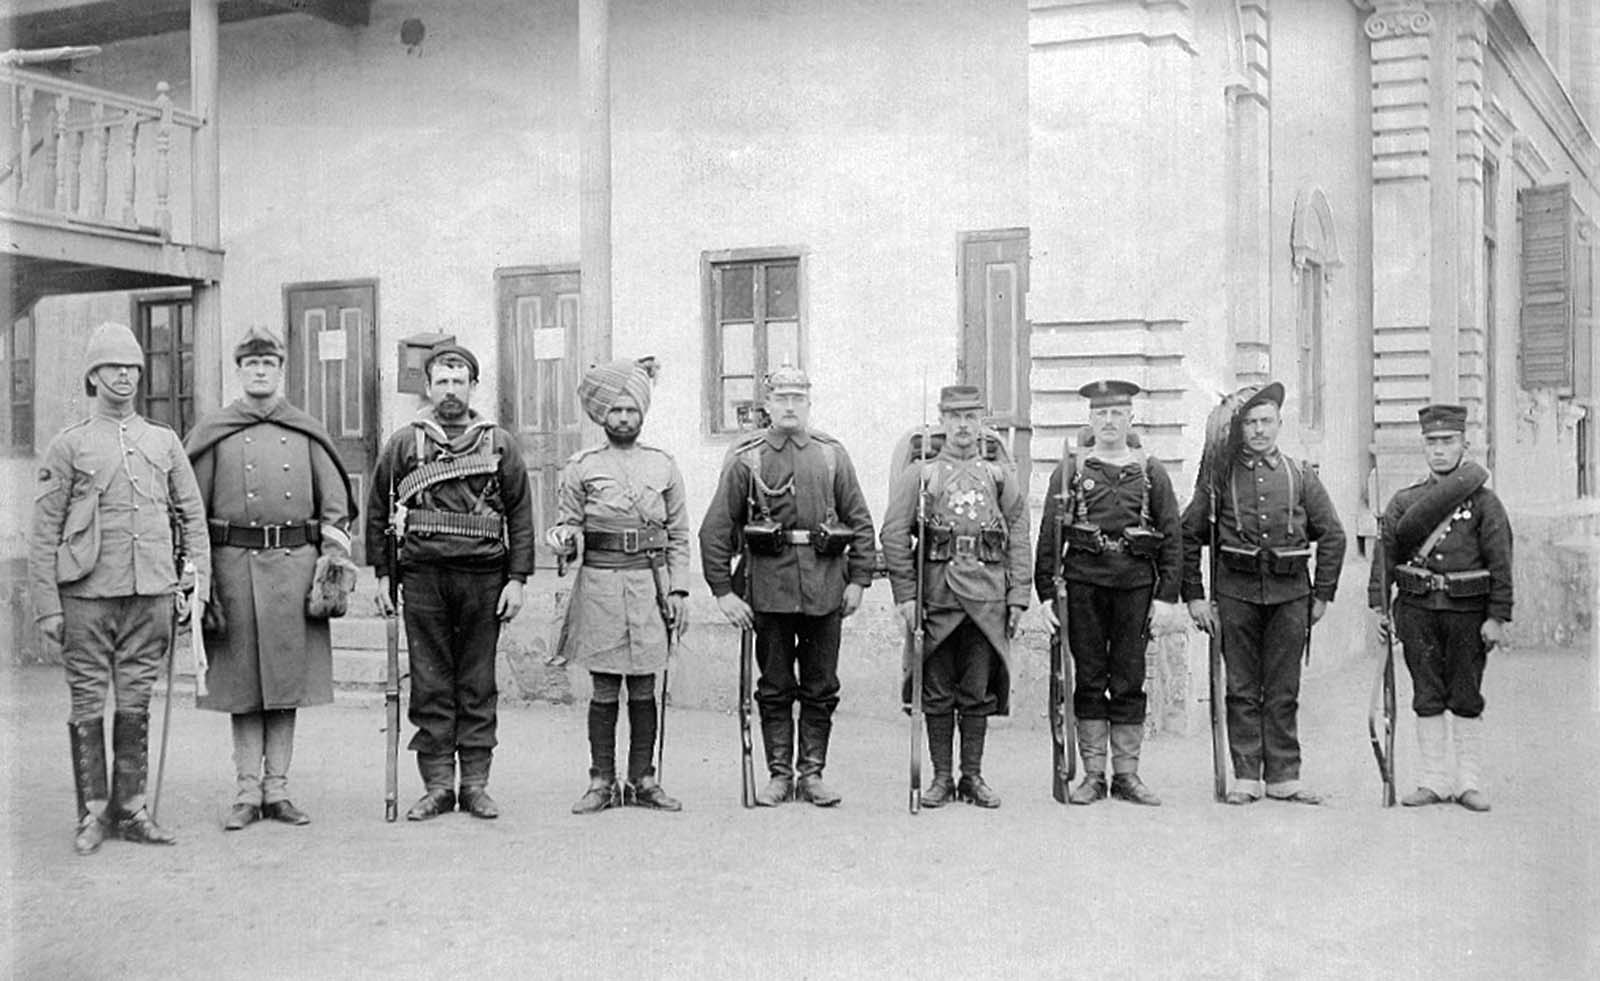 A photo of soldiers from the Eight-Nation Alliance, Beijing, 1900.